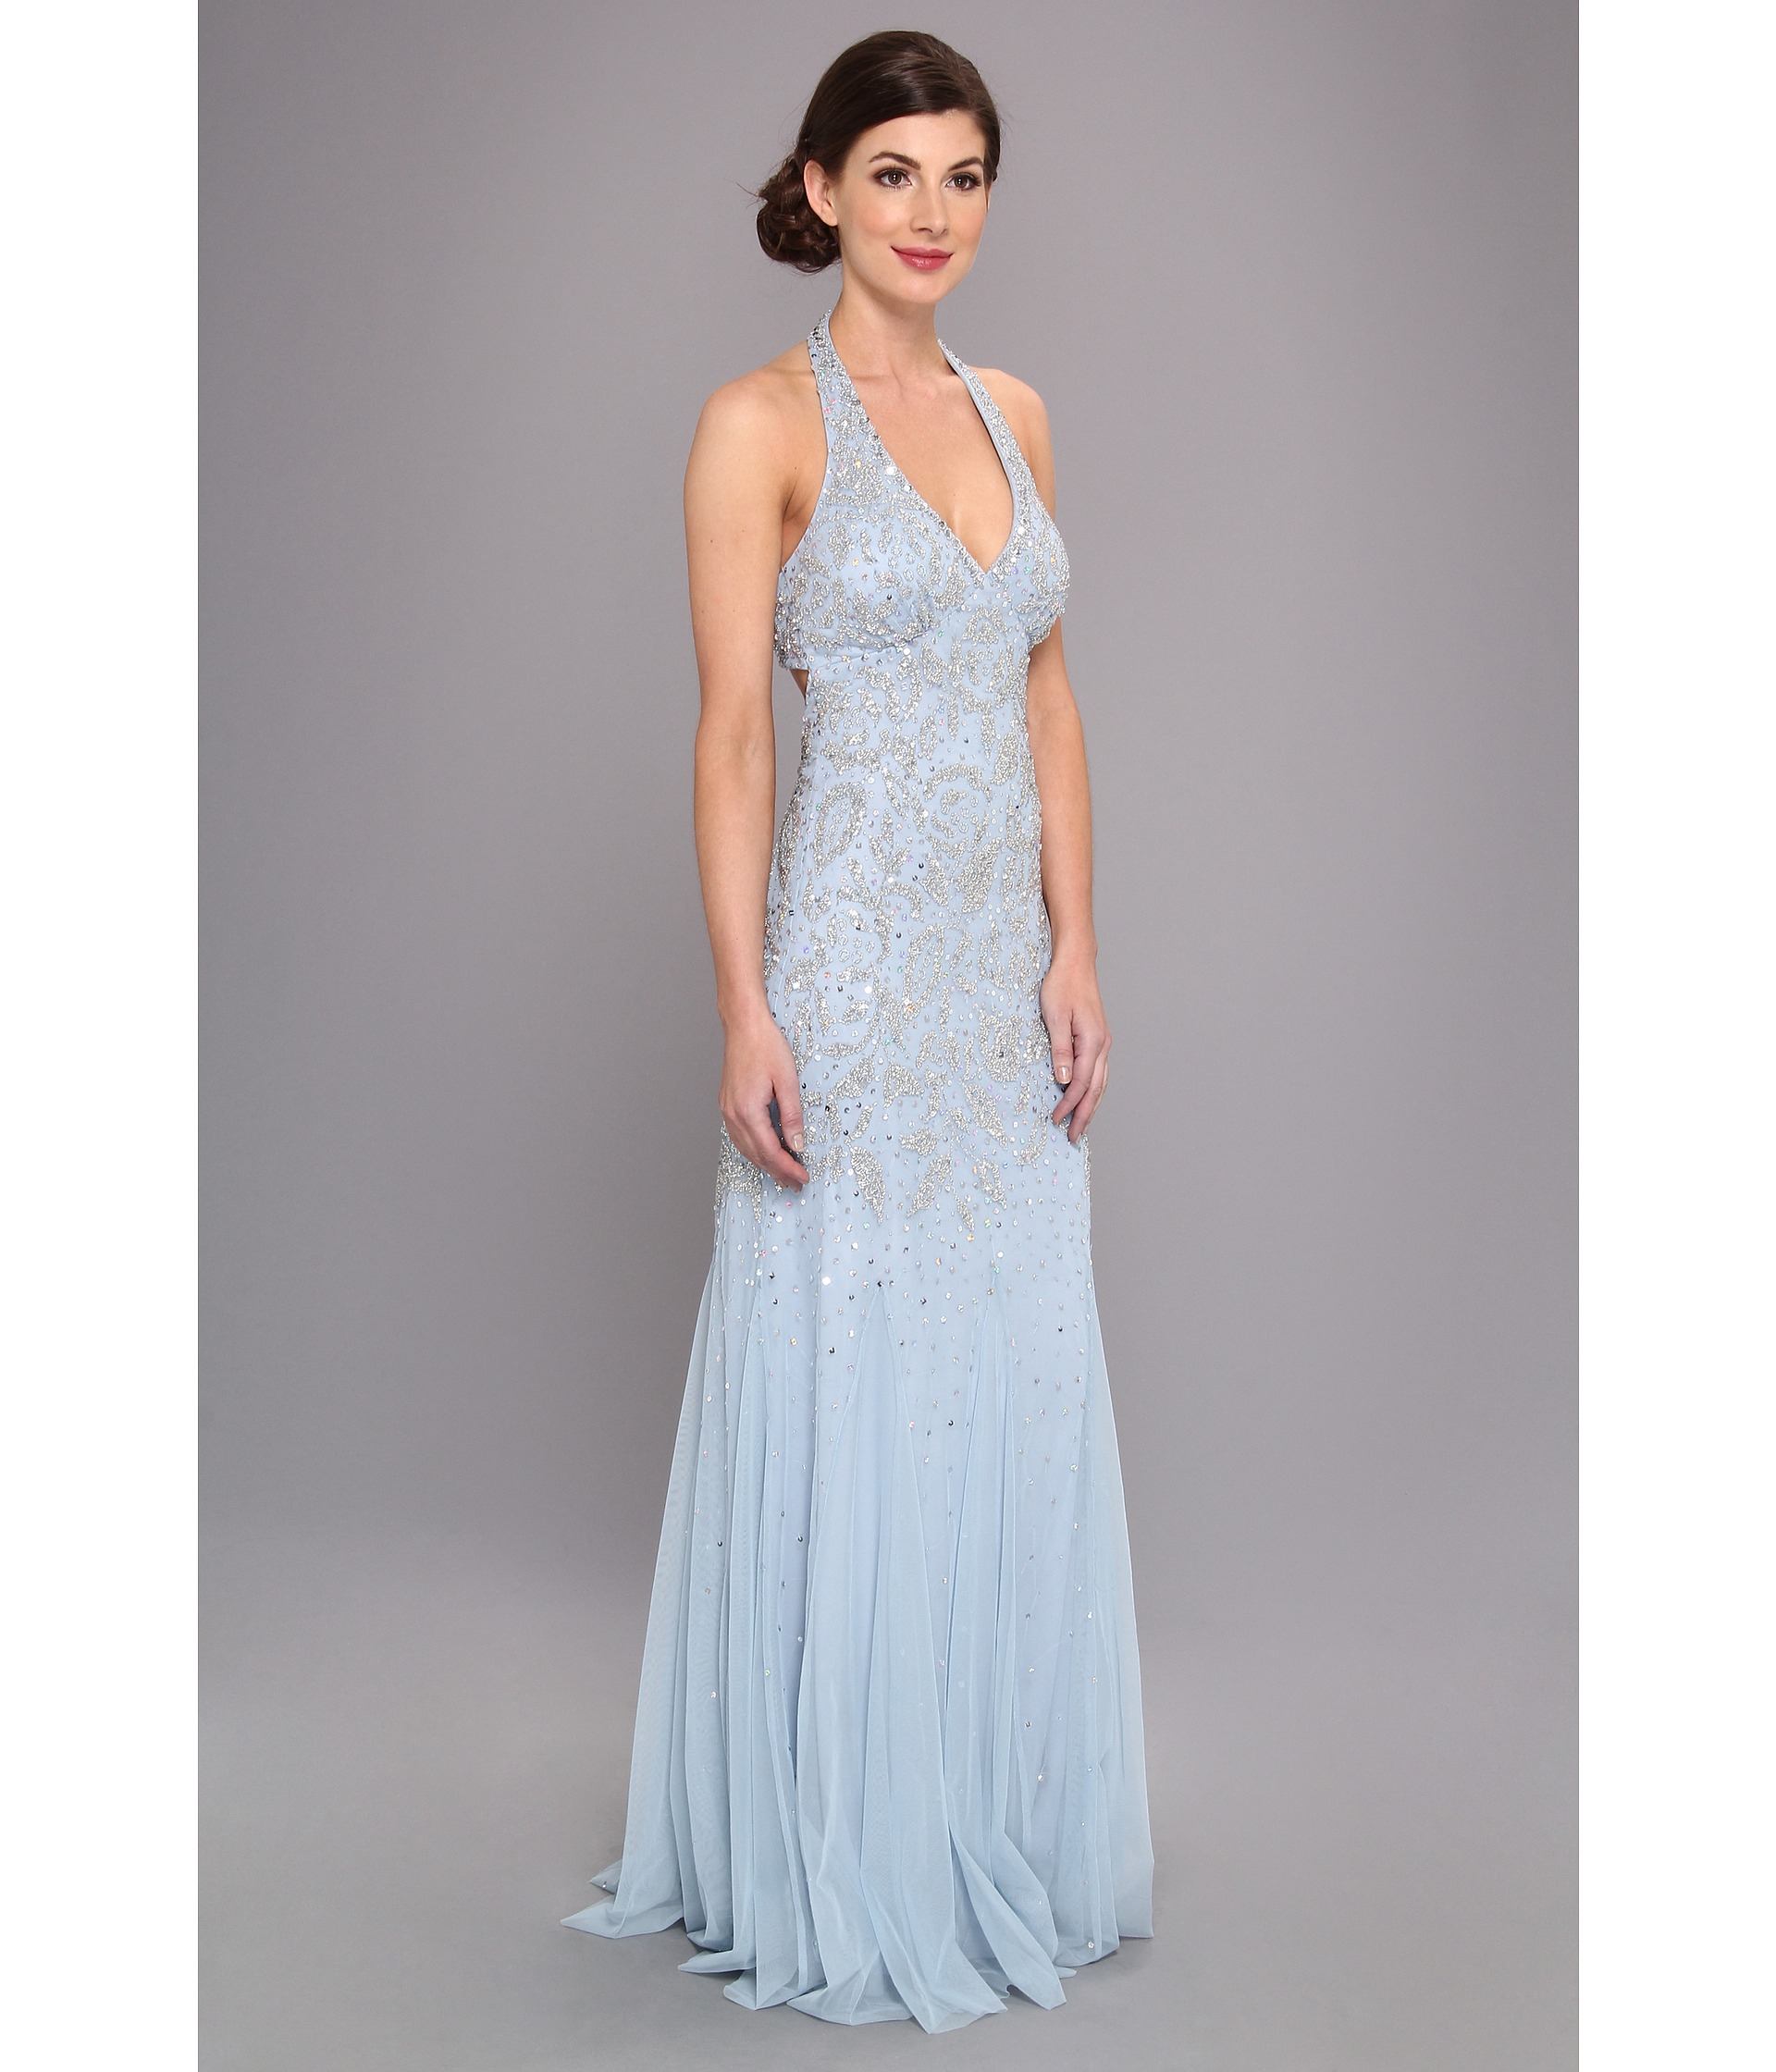 Adrianna Papell Prom Dresses | Dress images